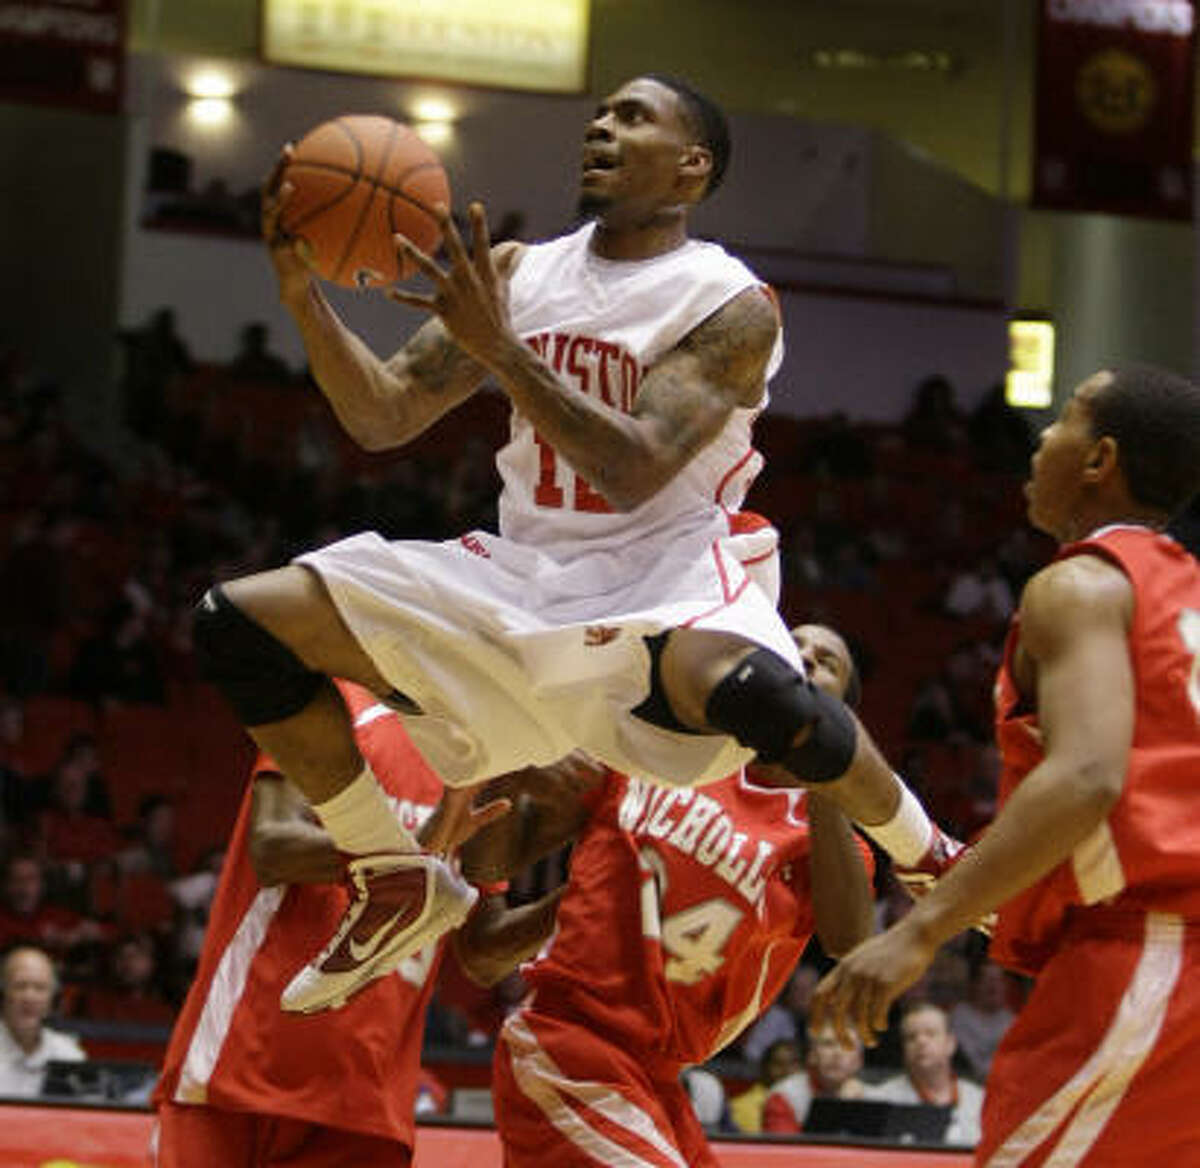 UH guard Aubrey Coleman (12) recorded 33 points, nine rebounds, four steals and three assists to lead the Cougars to a 92-60 win over Nicholls State in Tuesday's season opener at Hofheinz Pavilion.